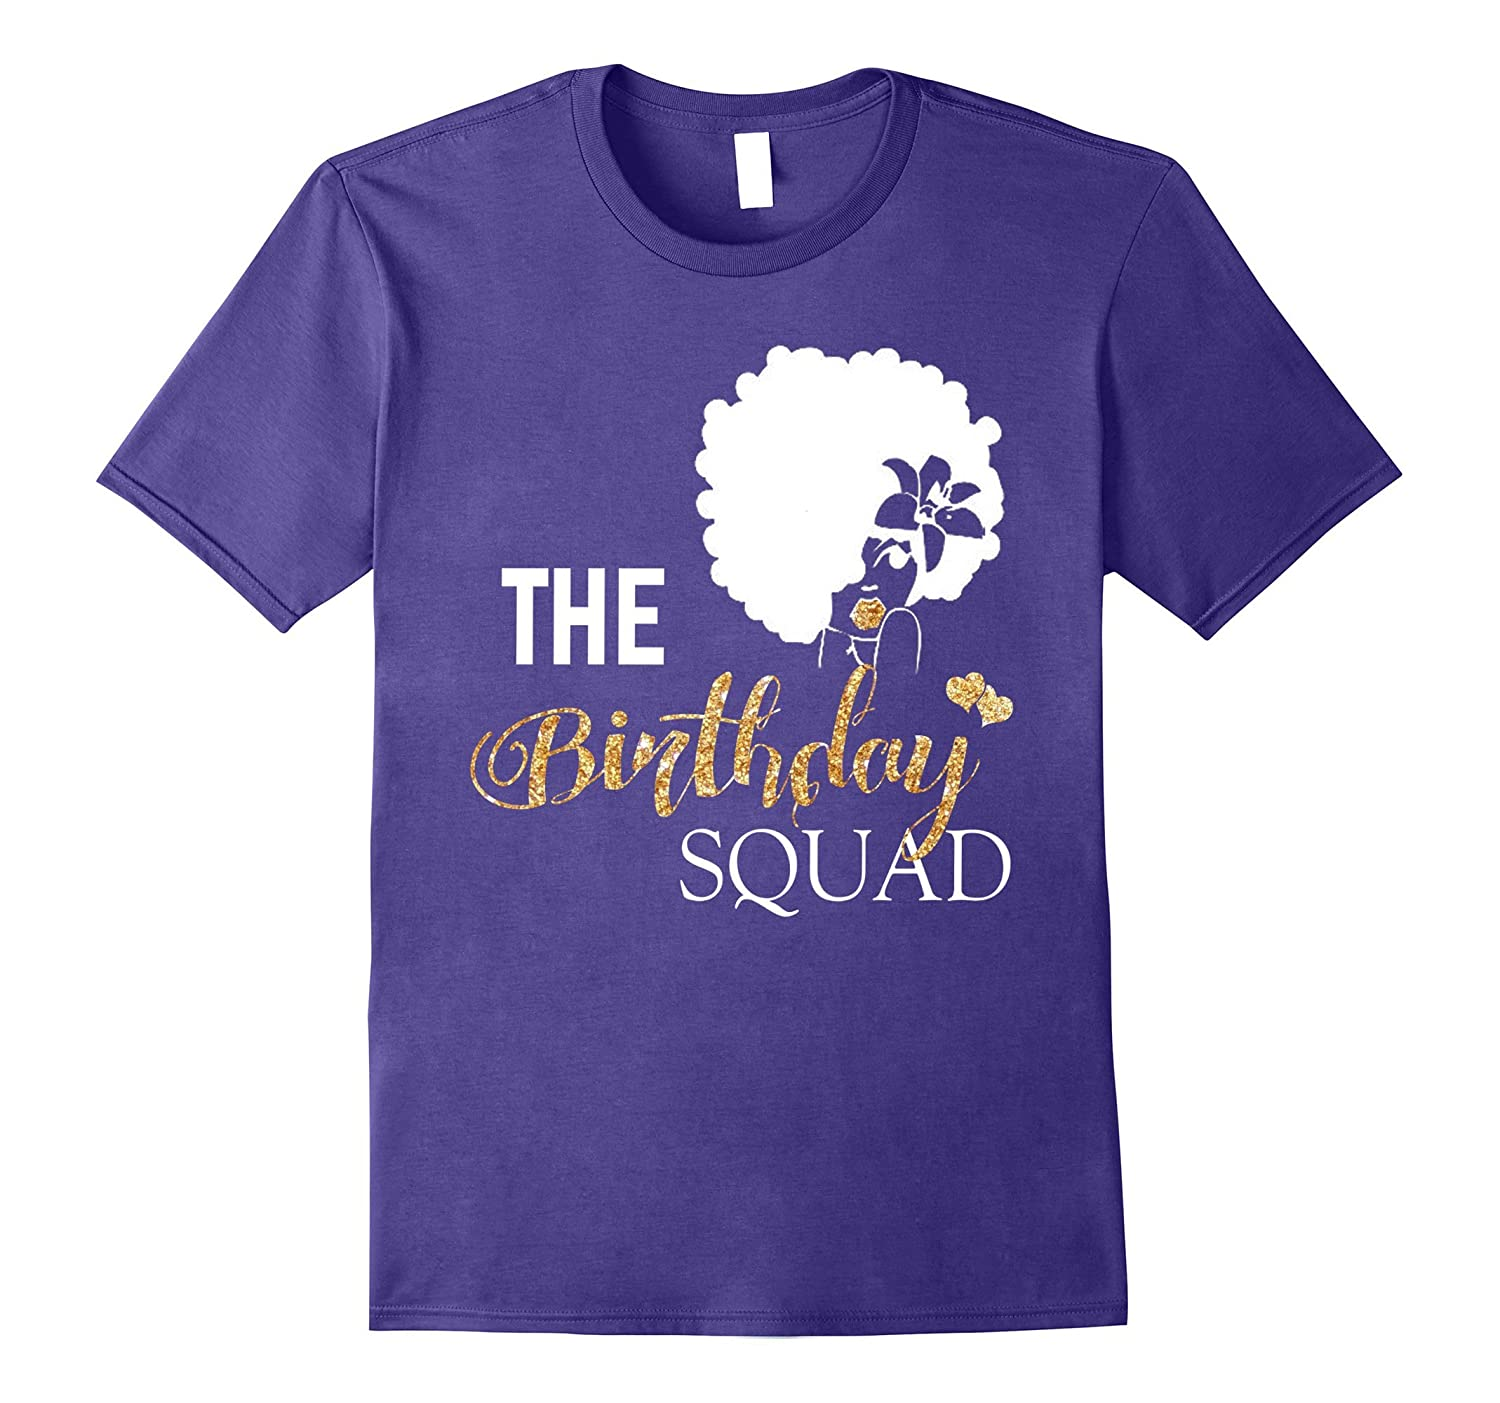 Black girl magic birthday squad shirt gold party gift t for Bucket squad gold shirt